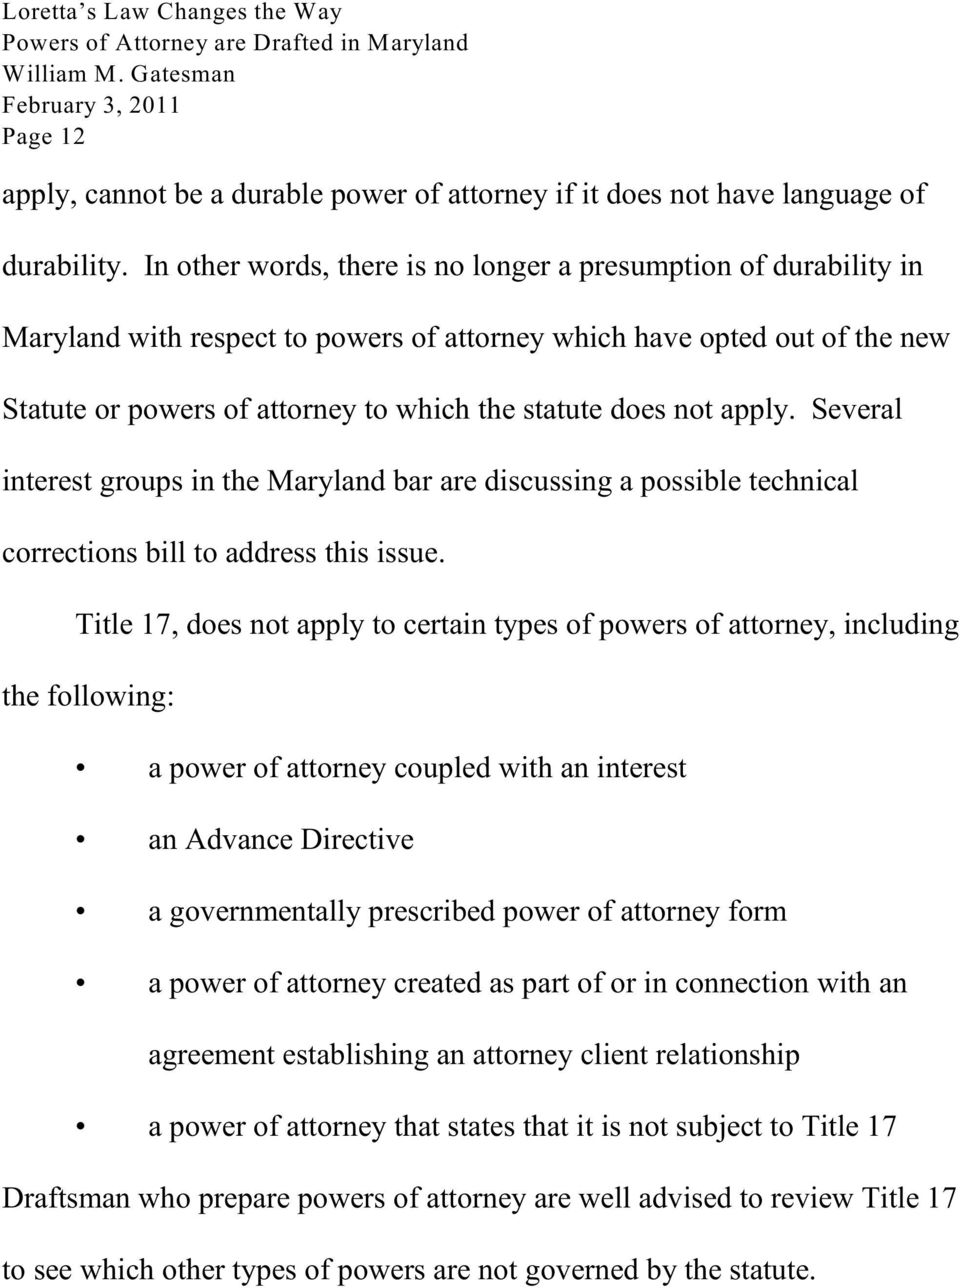 not apply. Several interest groups in the Maryland bar are discussing a possible technical corrections bill to address this issue.